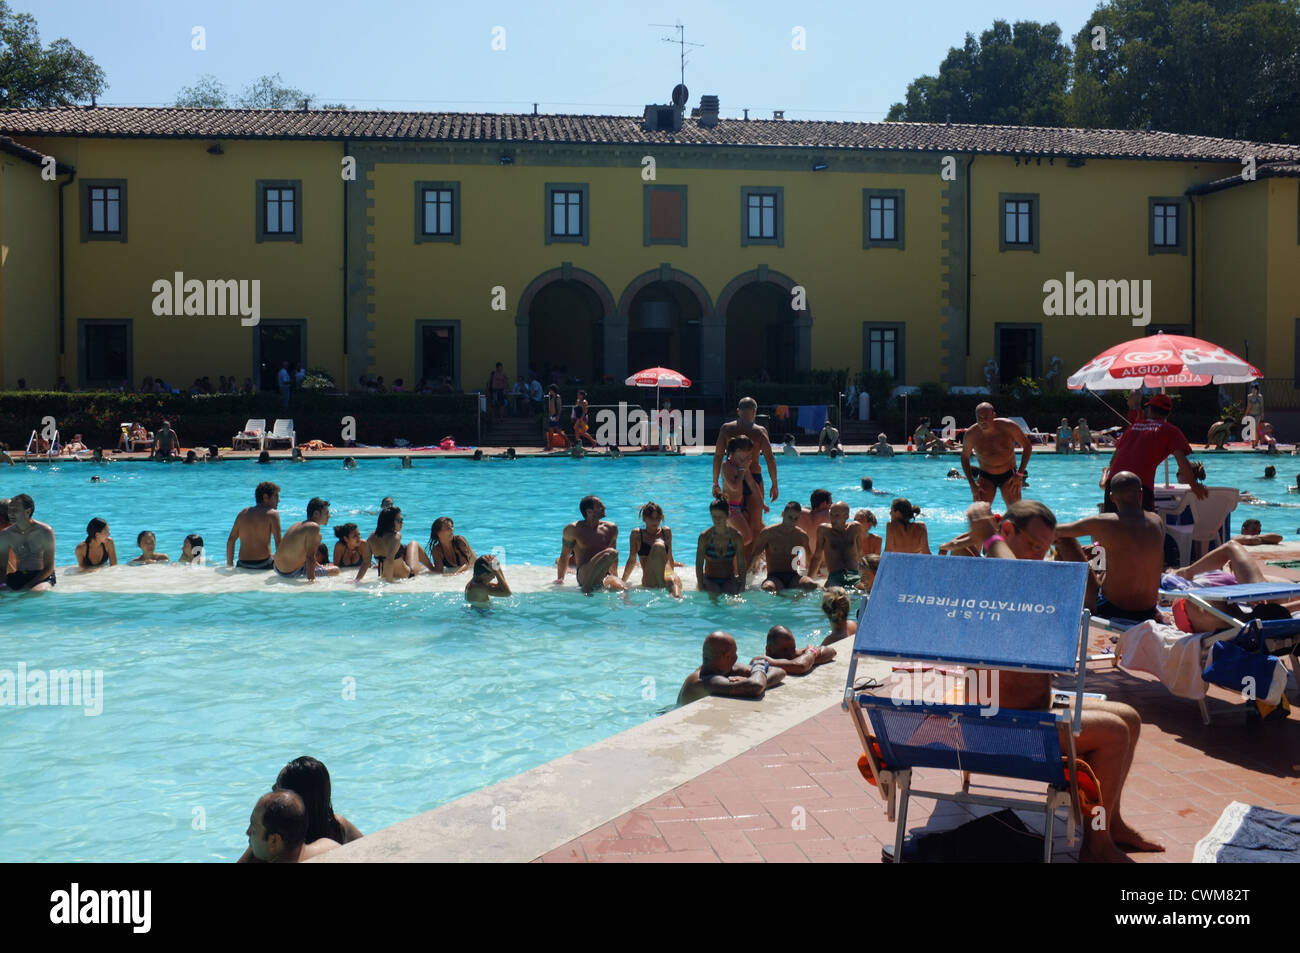 Le Pavoniere Public Swimming Pool In Florence Italy Stock Photo Royalty Free Image 50232528